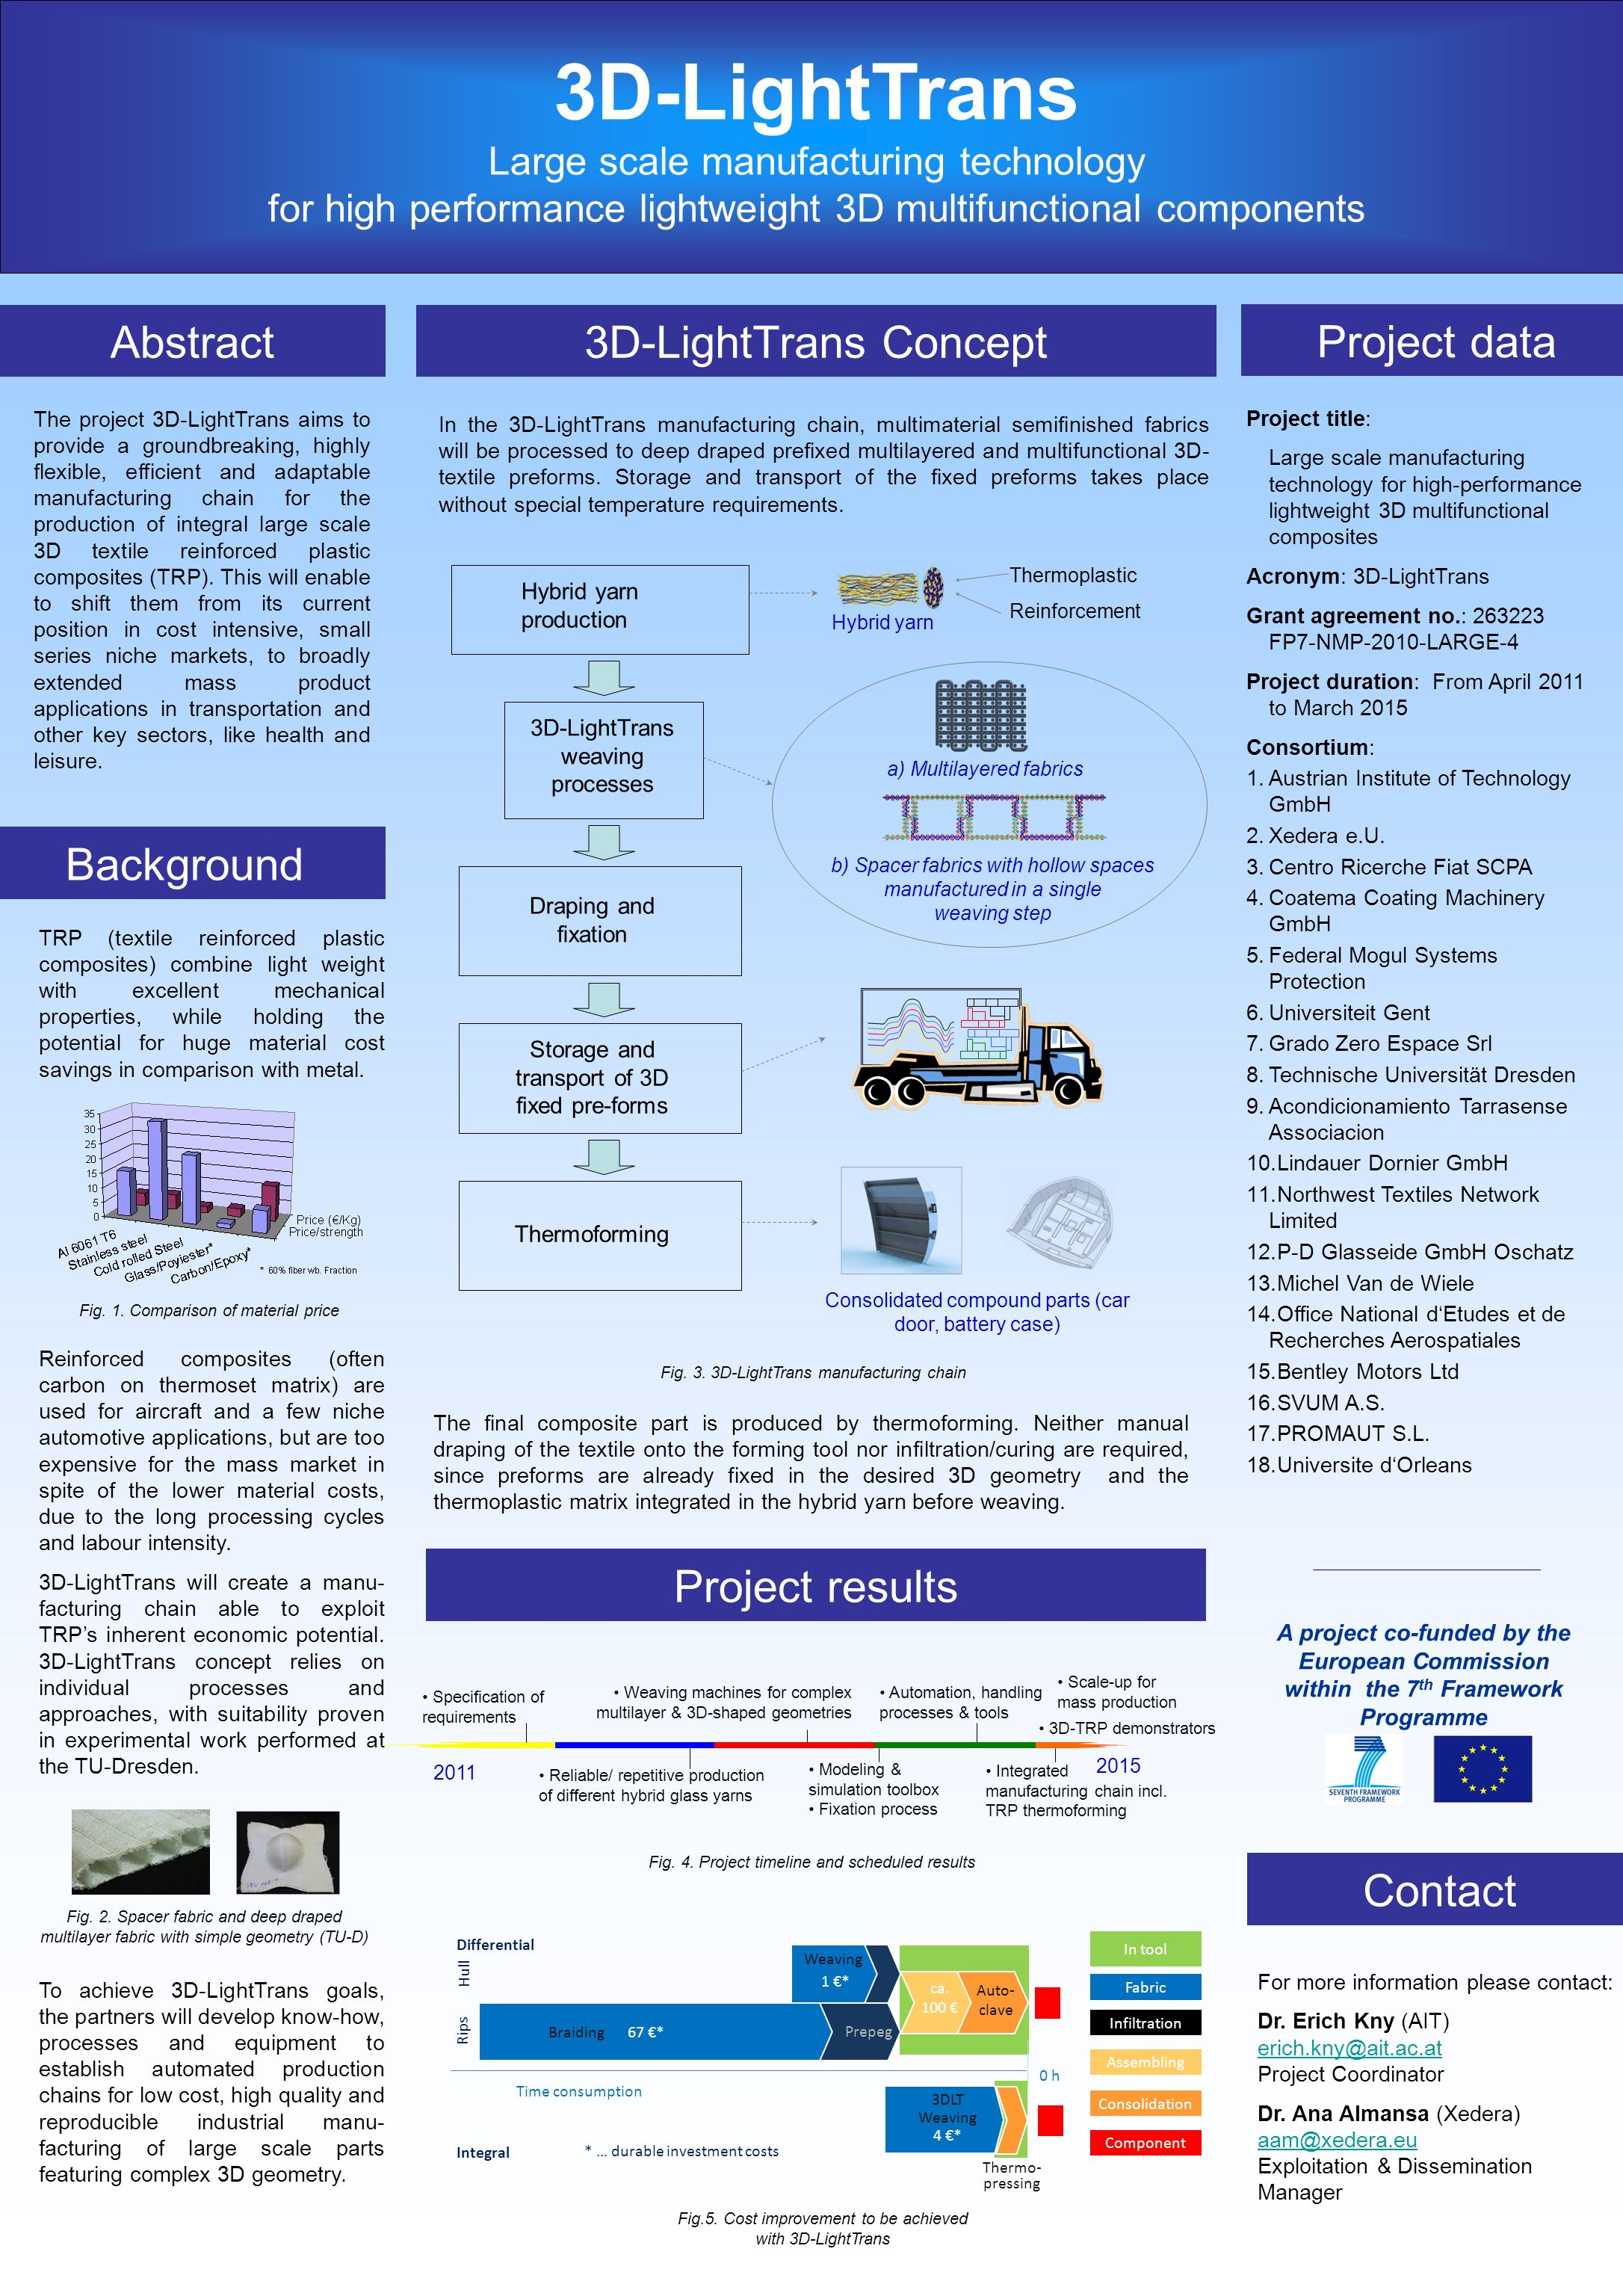 3D-LightTrans Large scale manufacturing technology for high performance lightweight 3D multifunctional components Abstract3D-LightTrans Concept Project data The project 3D-LightTrans aims to provide a groundbreaking, highly flexible, efficient and adaptable manufacturing chain for the production of integral large scale 3D textile reinforced plastic composites (TRP).